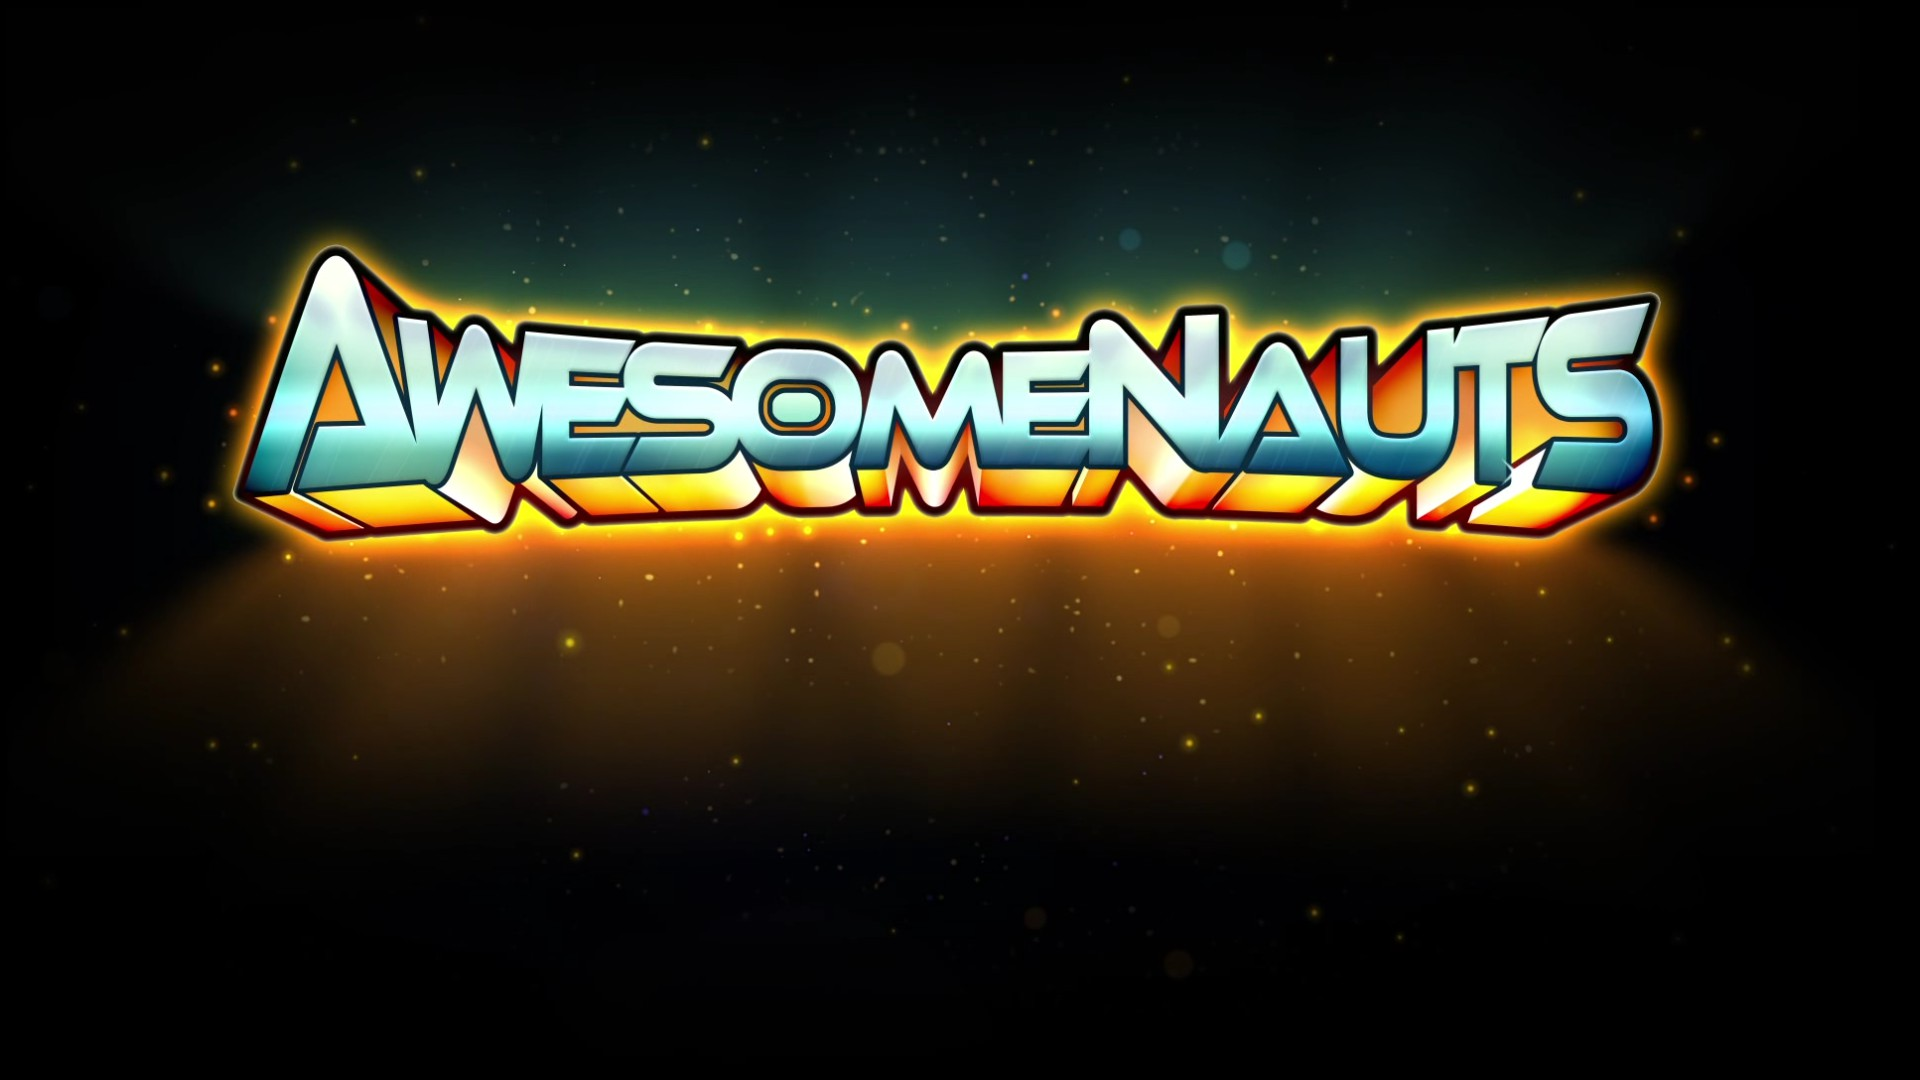 awesomenauts logo wallpaper 44782